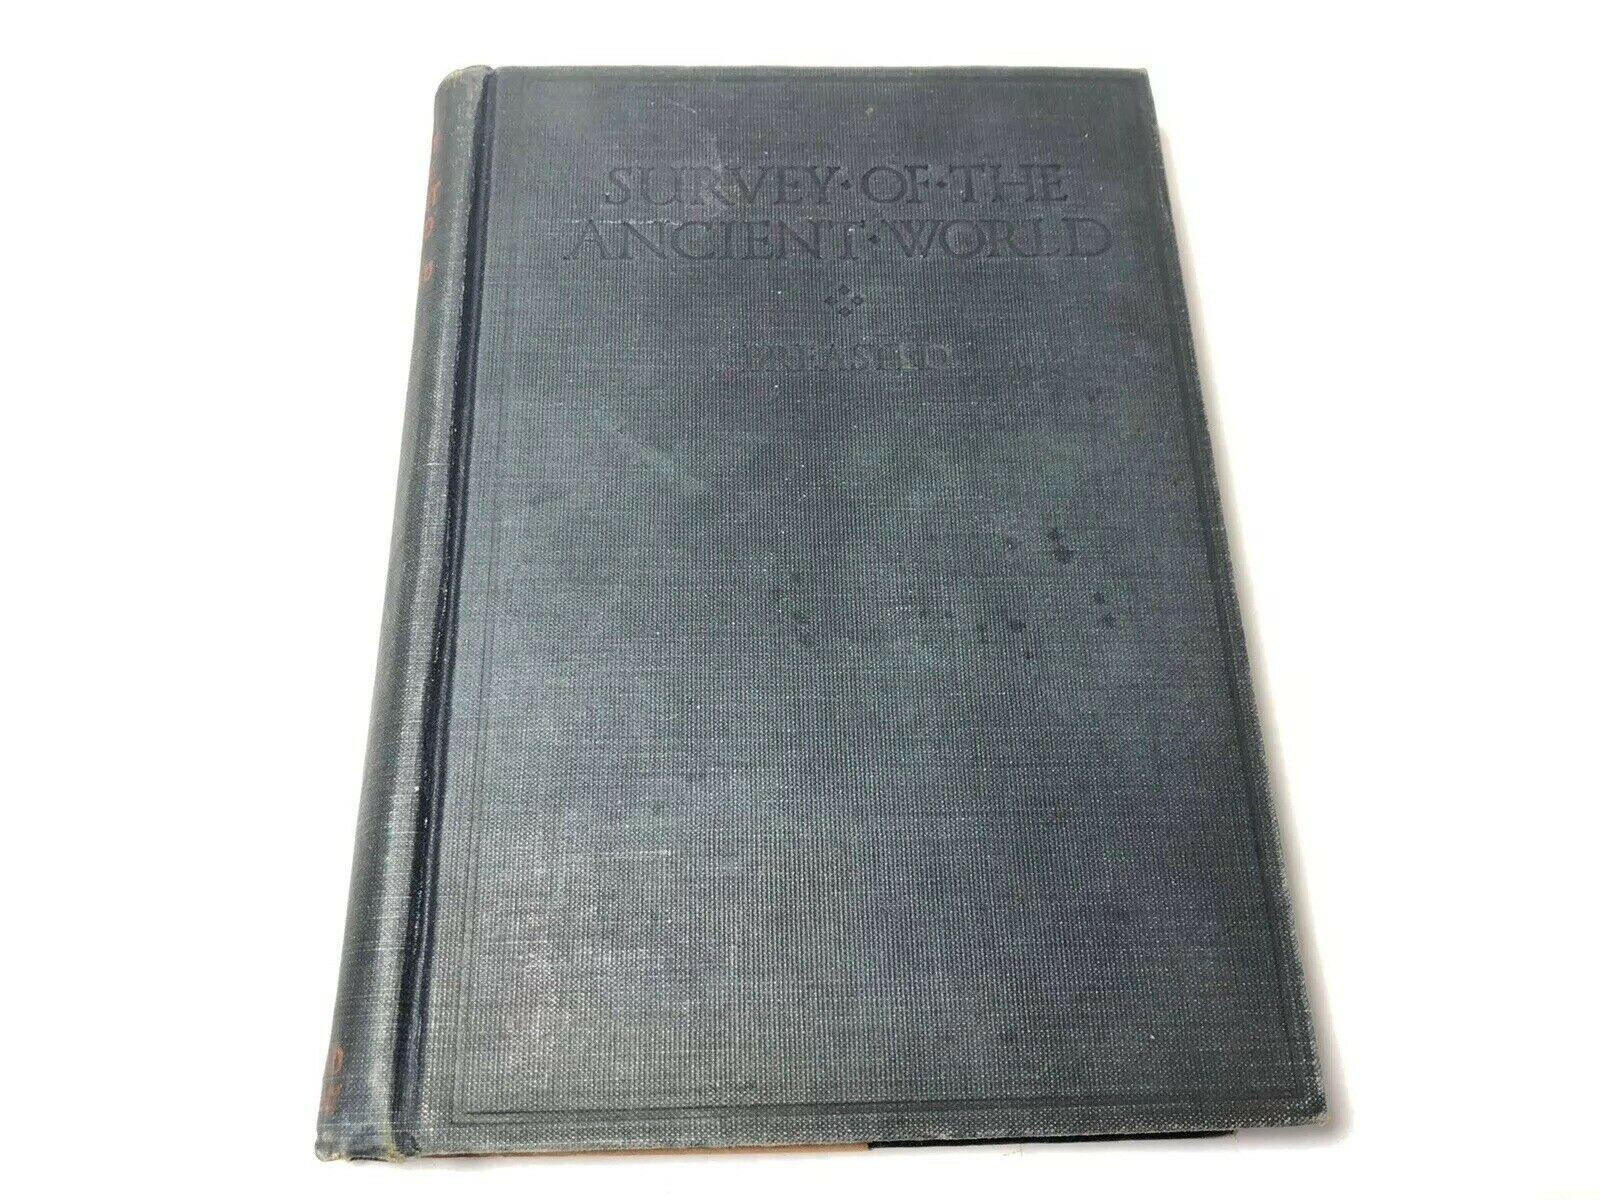 1919 Antique Book: Survey of the Ancient World by James Henry Breasted, 1st Ed.